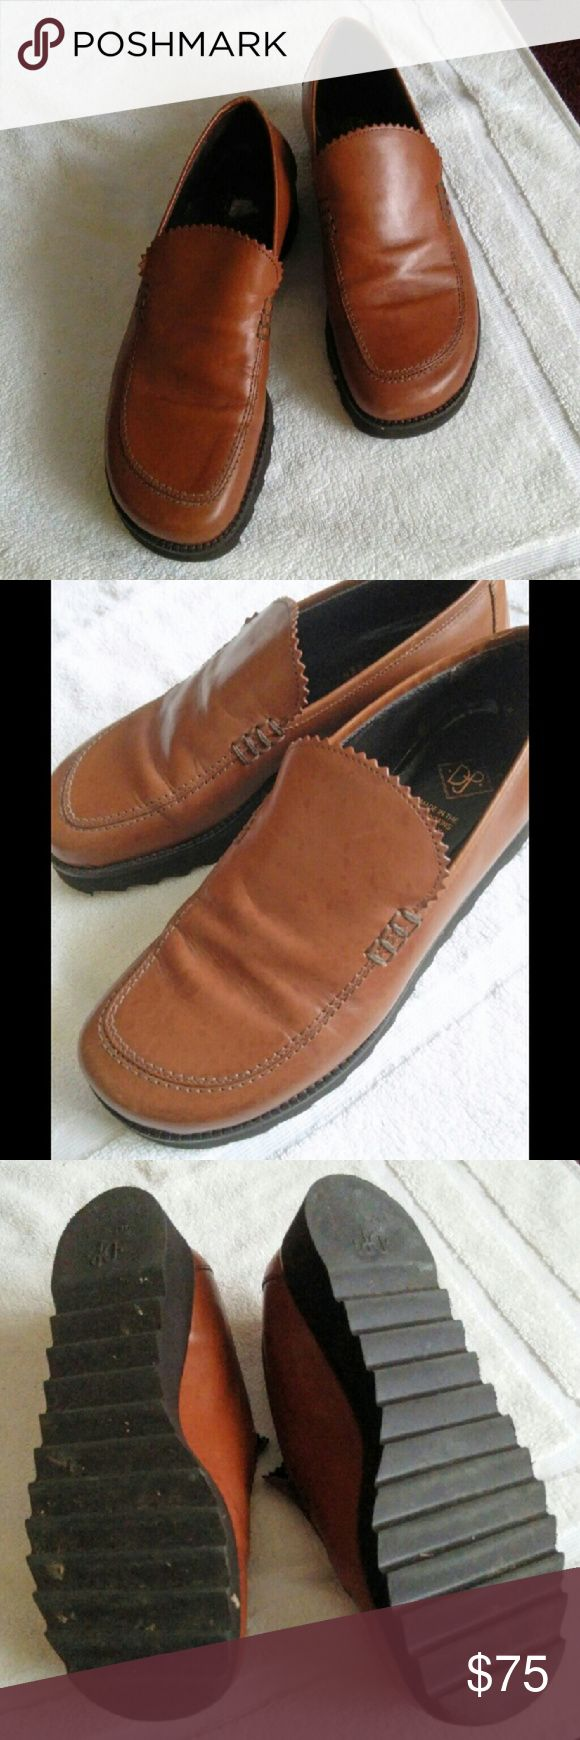 Donald J Pliner Tan Loafers Very comfortable. Neutral easy to coordin Shoes Flats & Loafers